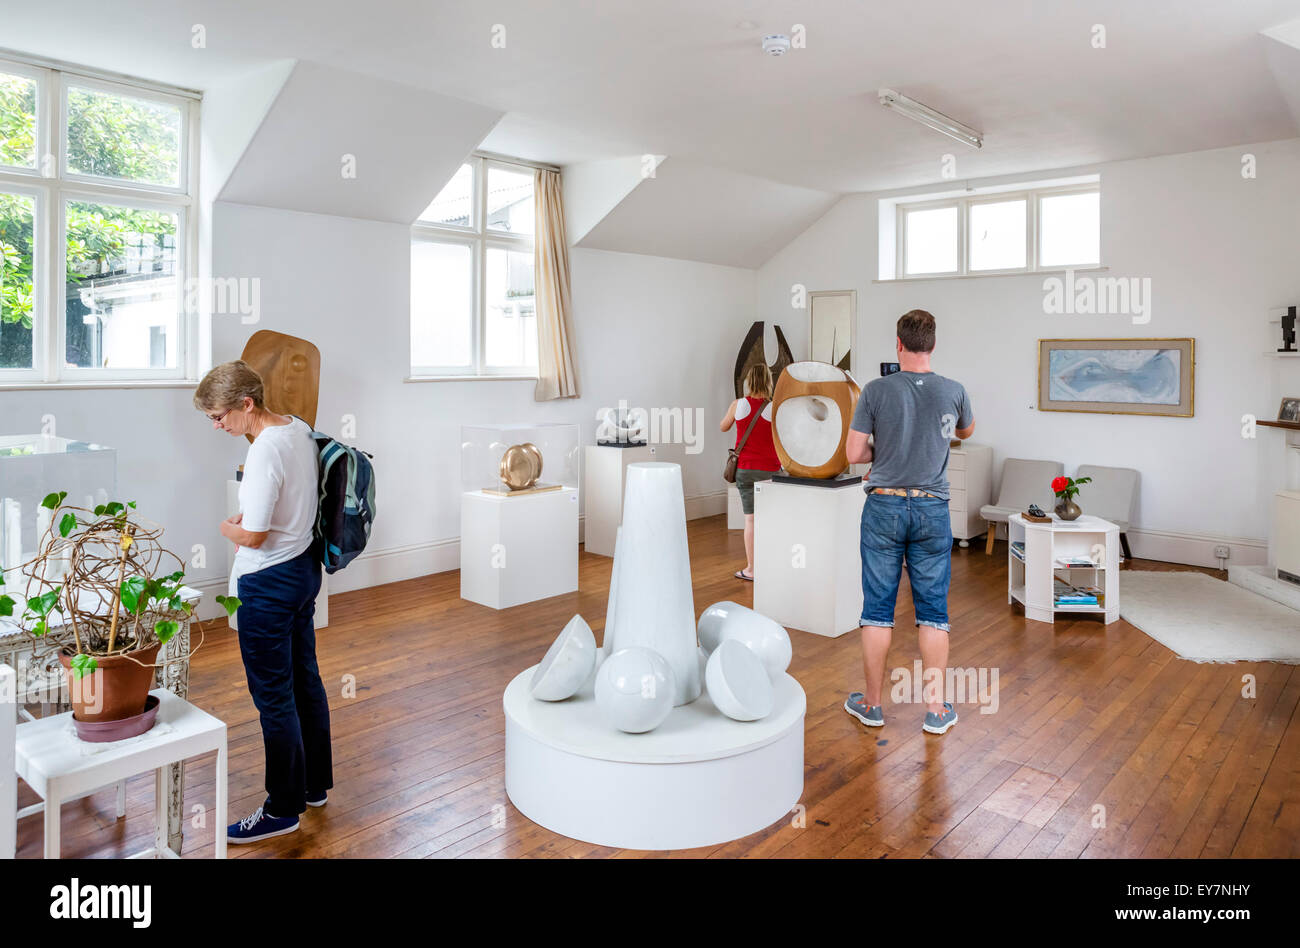 Interior of the Barbara Hepworth Museum and Sculpture Garden, St Ives, Cornwall, England, UK - Stock Image